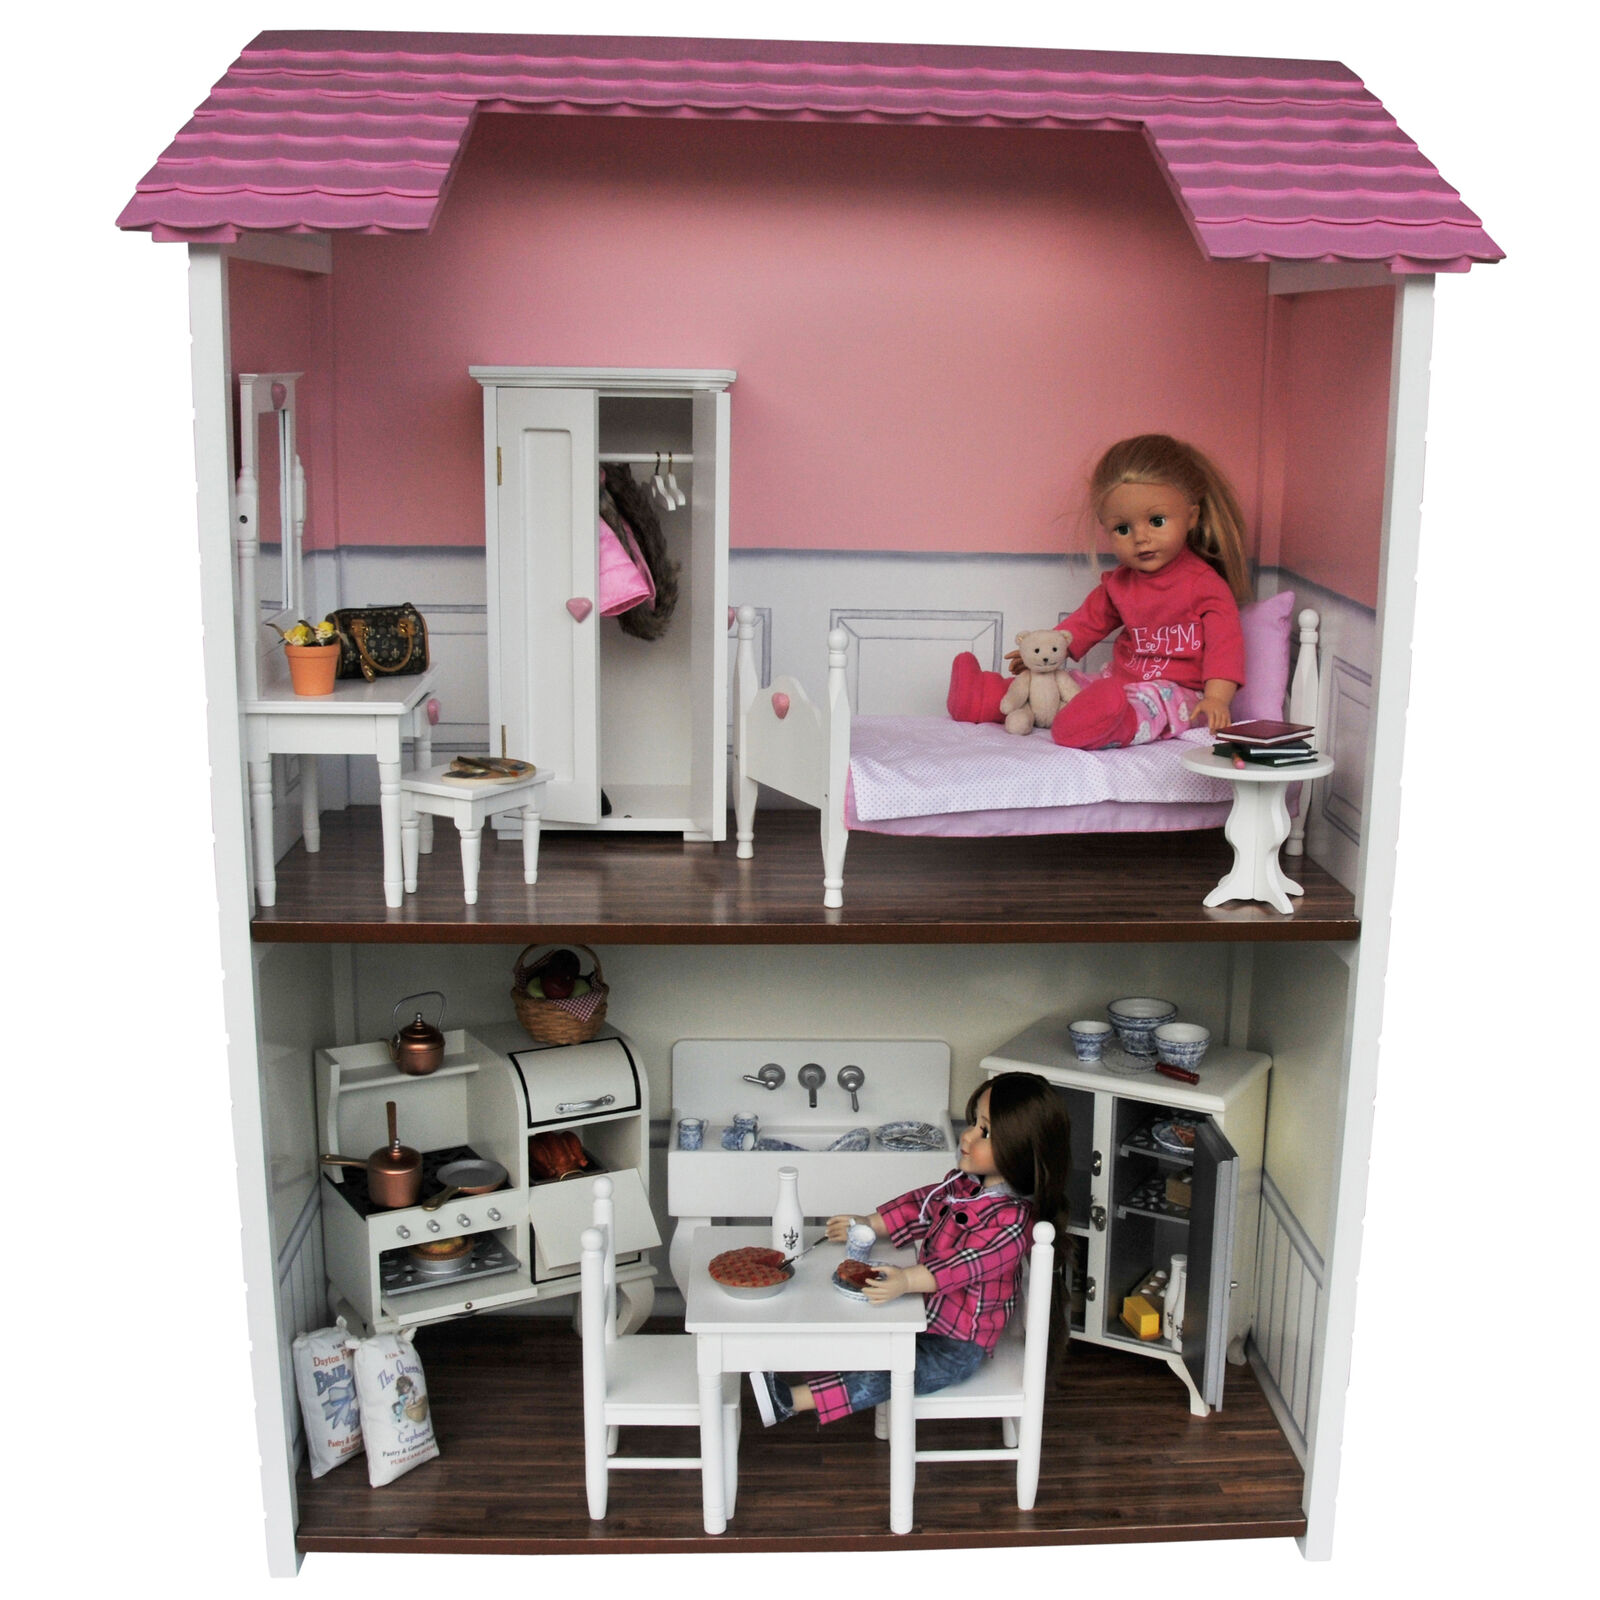 2 Story Doll Town House For 18 Inch American Girl Dolls Furniture